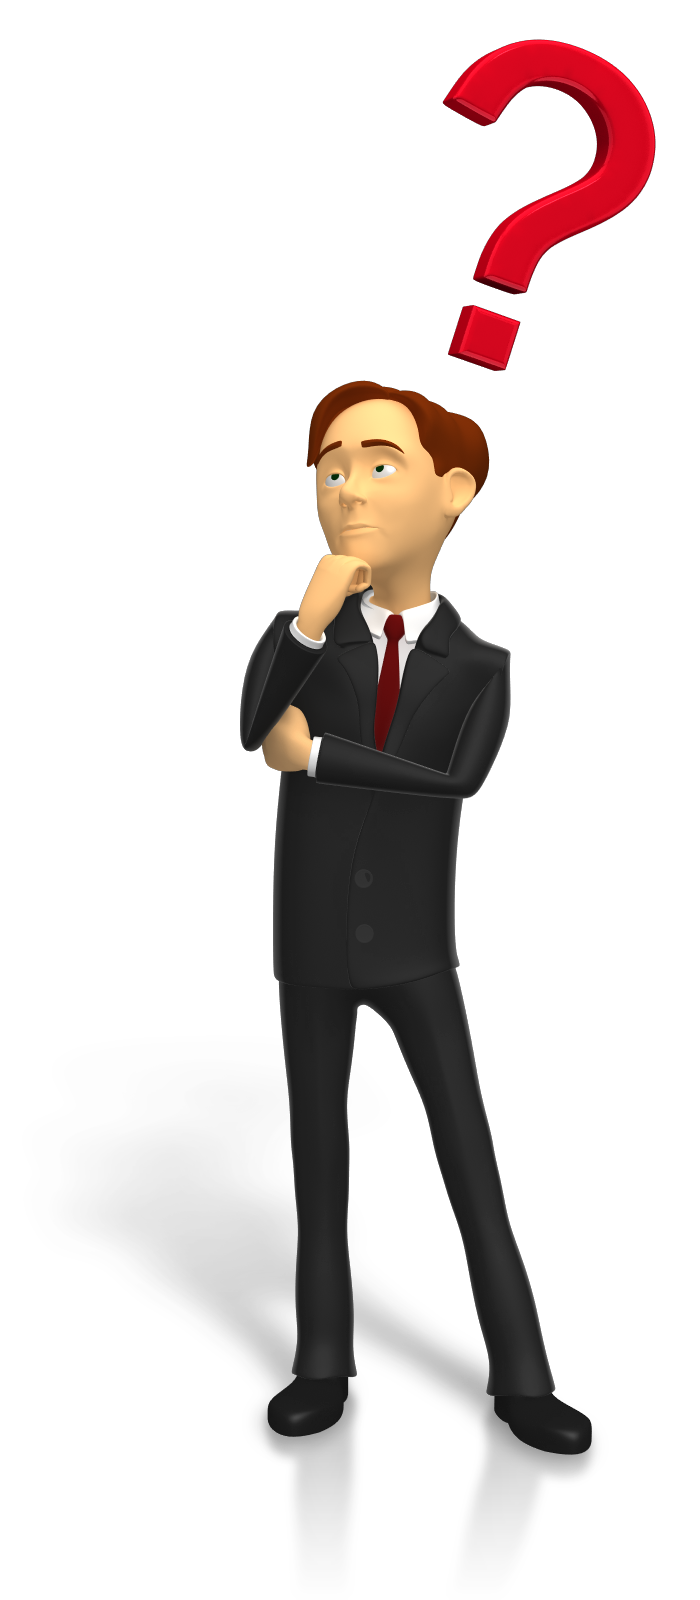 Standing Animation Presentation Powerpoint Businessperson Free Photo PNG PNG Image